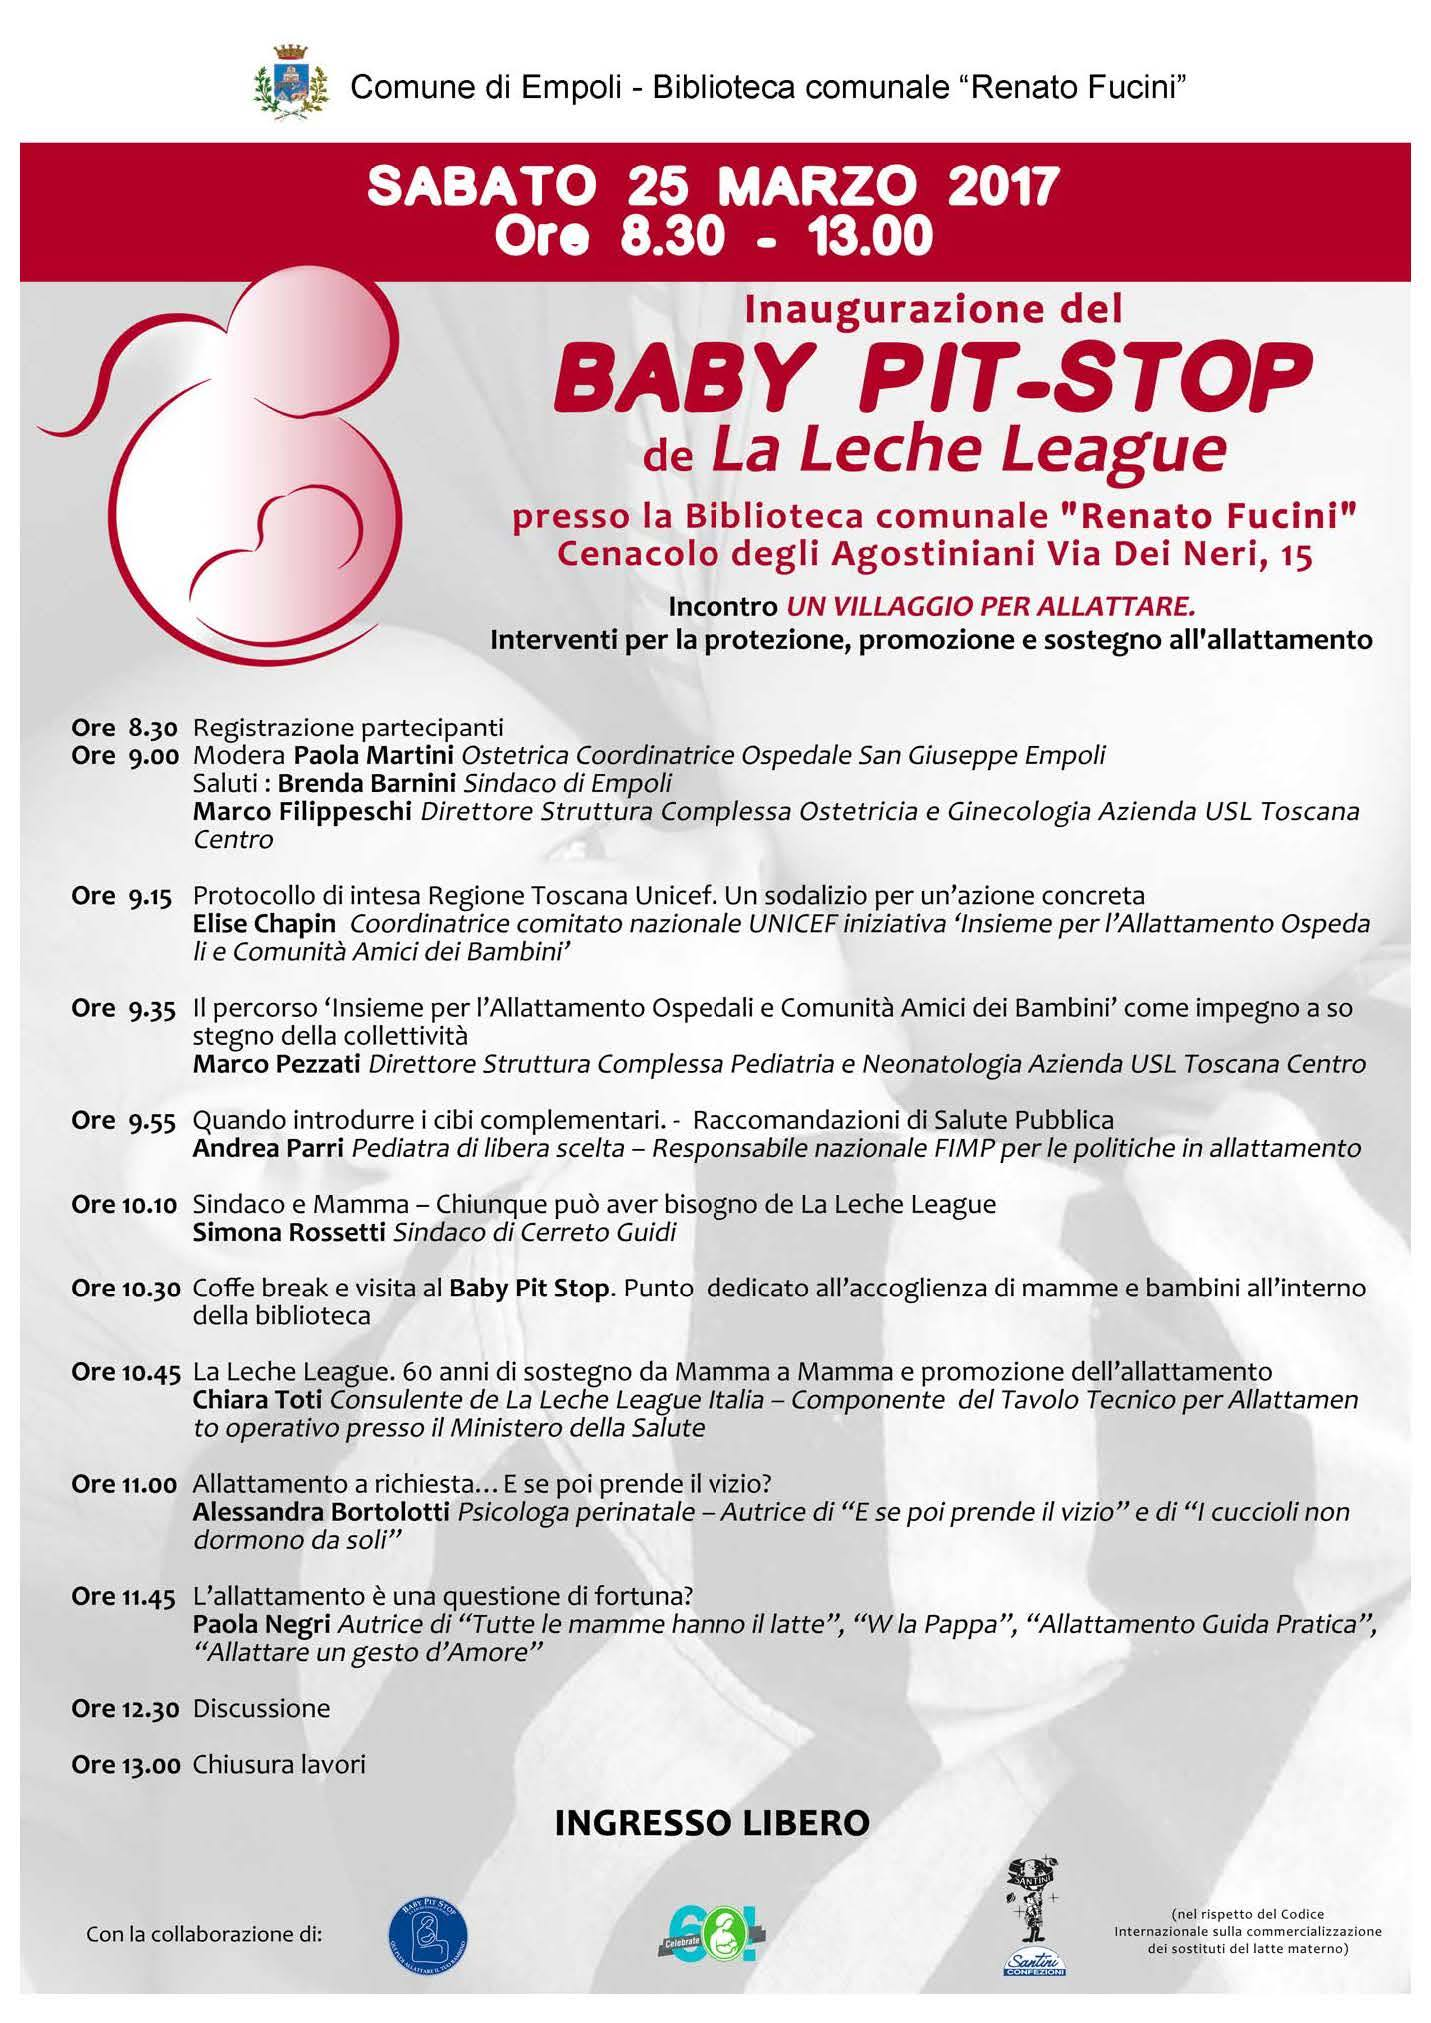 Baby pit-stop